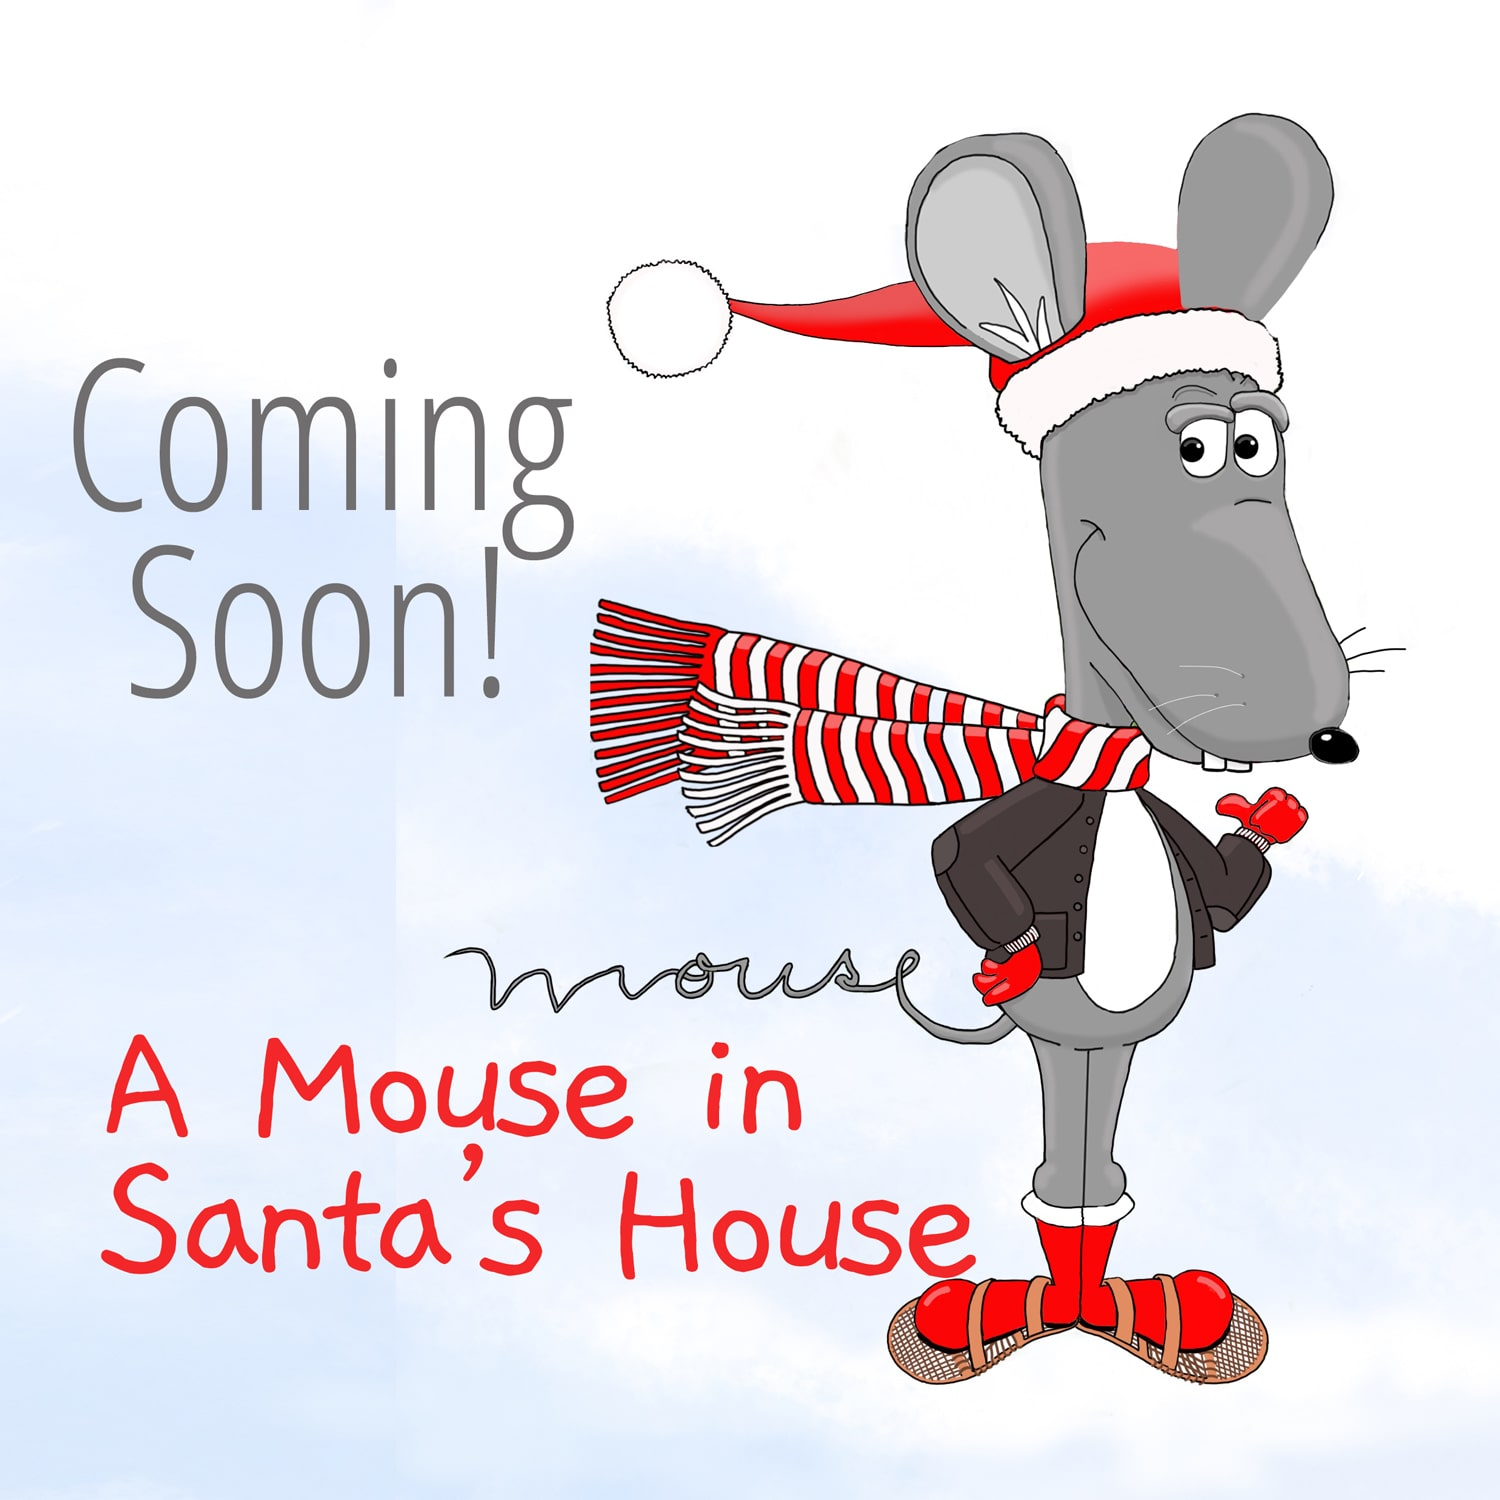 A Mouse In Santa's House by Richard Ballo